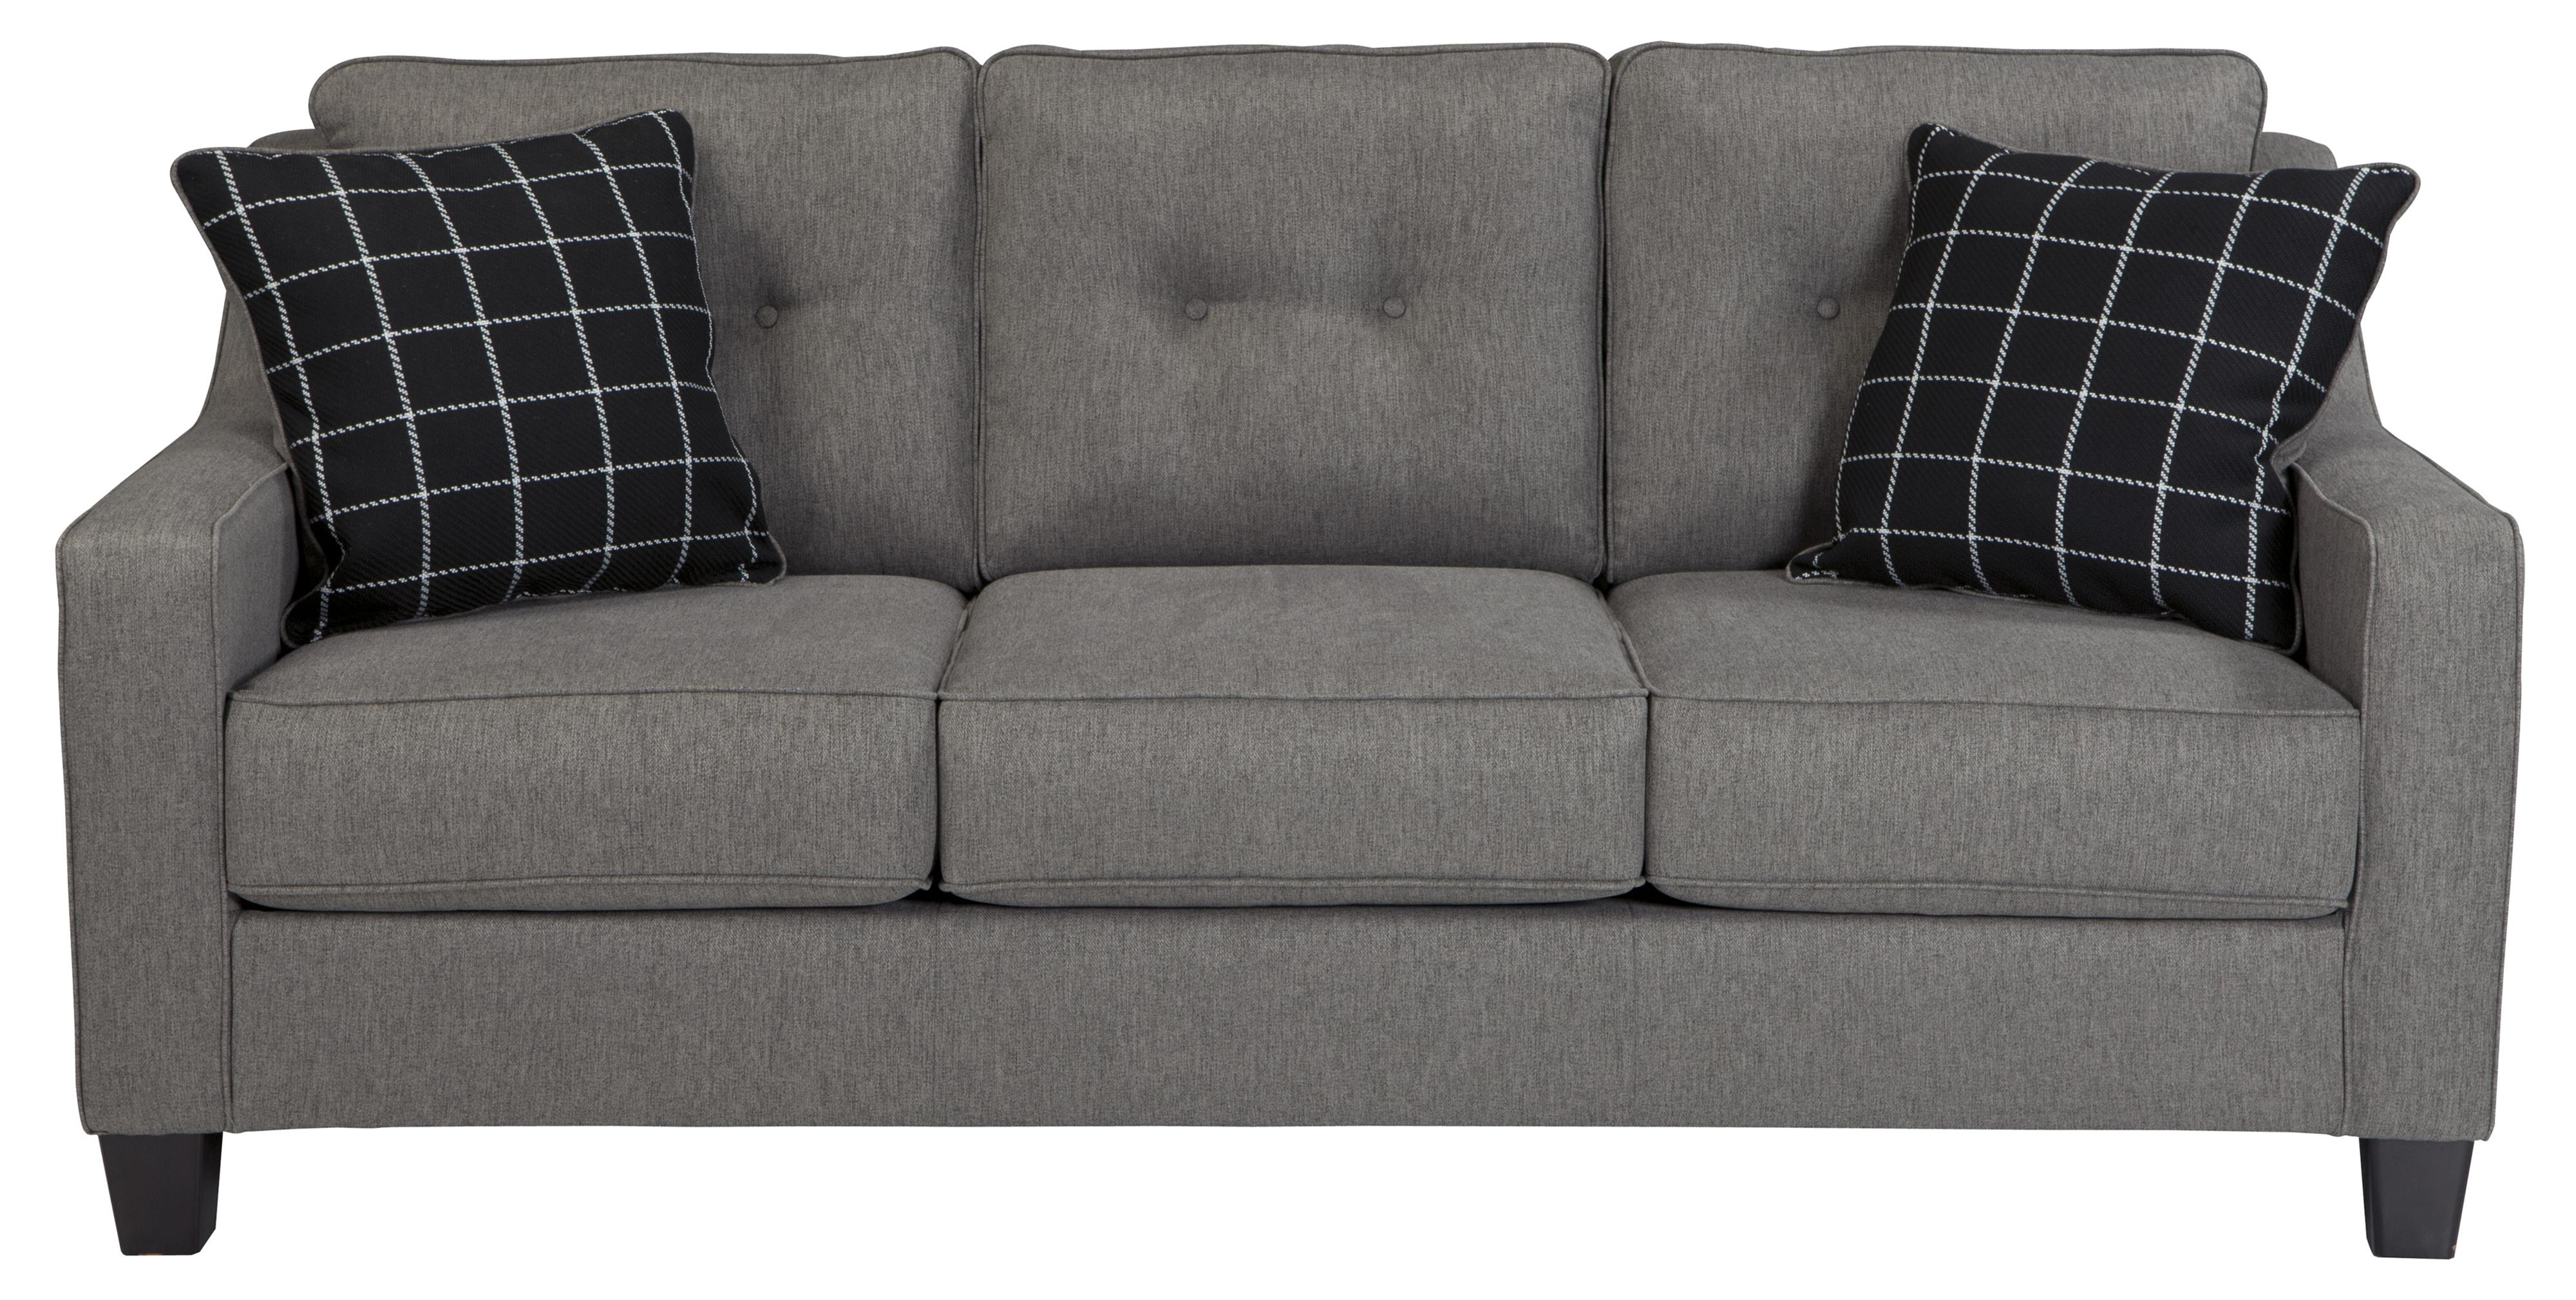 Brindon Queen Sofa Sleeper by Benchcraft at Miller Waldrop Furniture and Decor